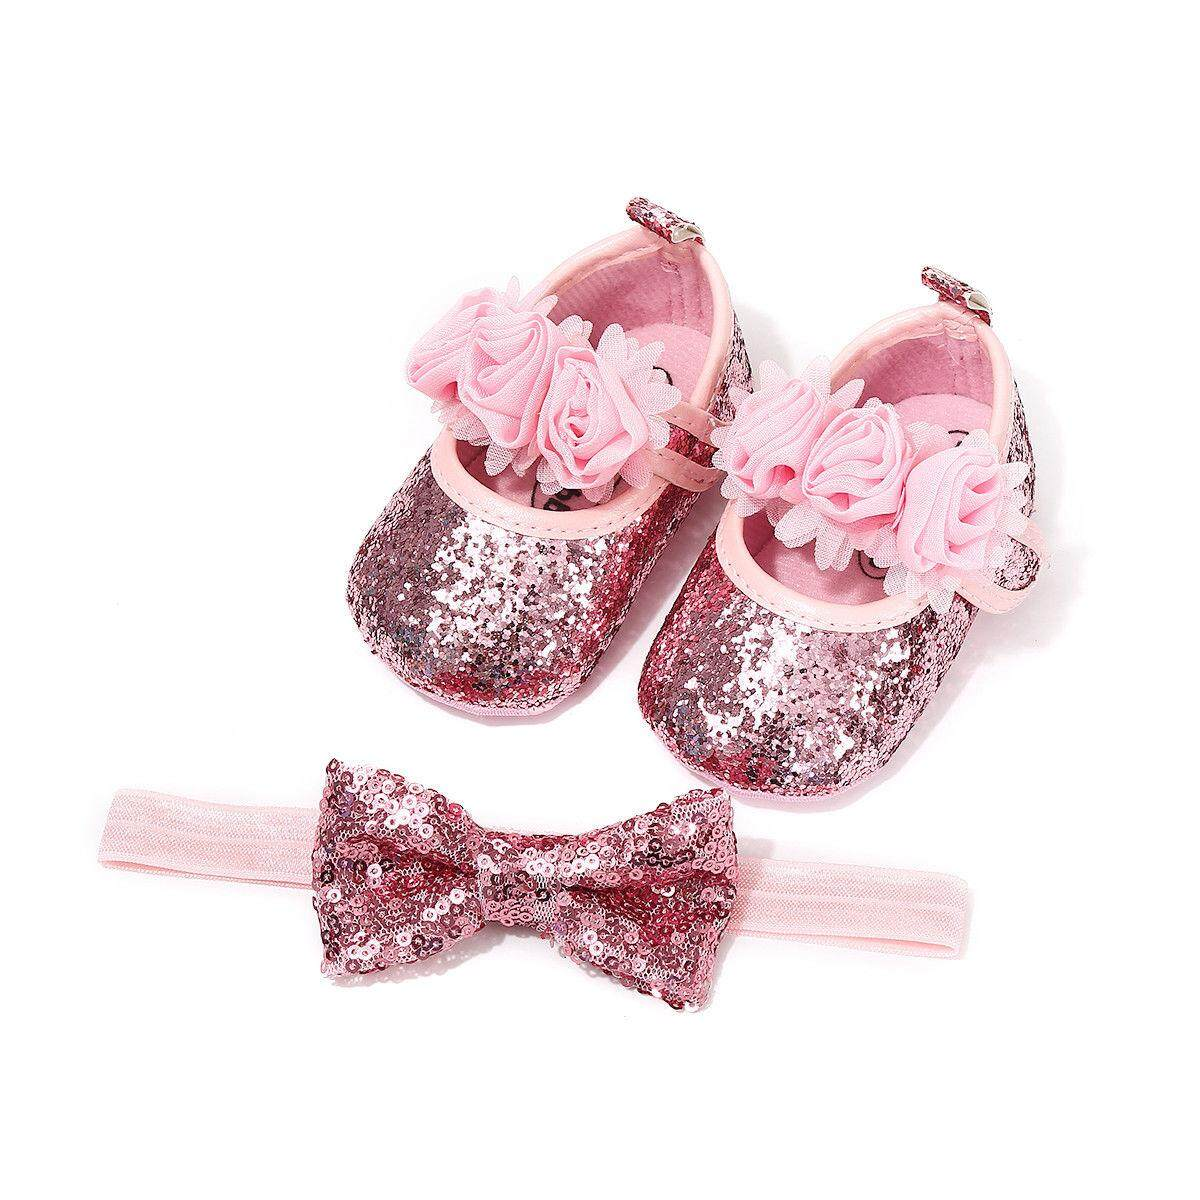 42c358041 Newborn Infant Baby Girls Boys Summer Crib Shoes 3 Style Sequined Floral  Flat Hook Princess Shoes